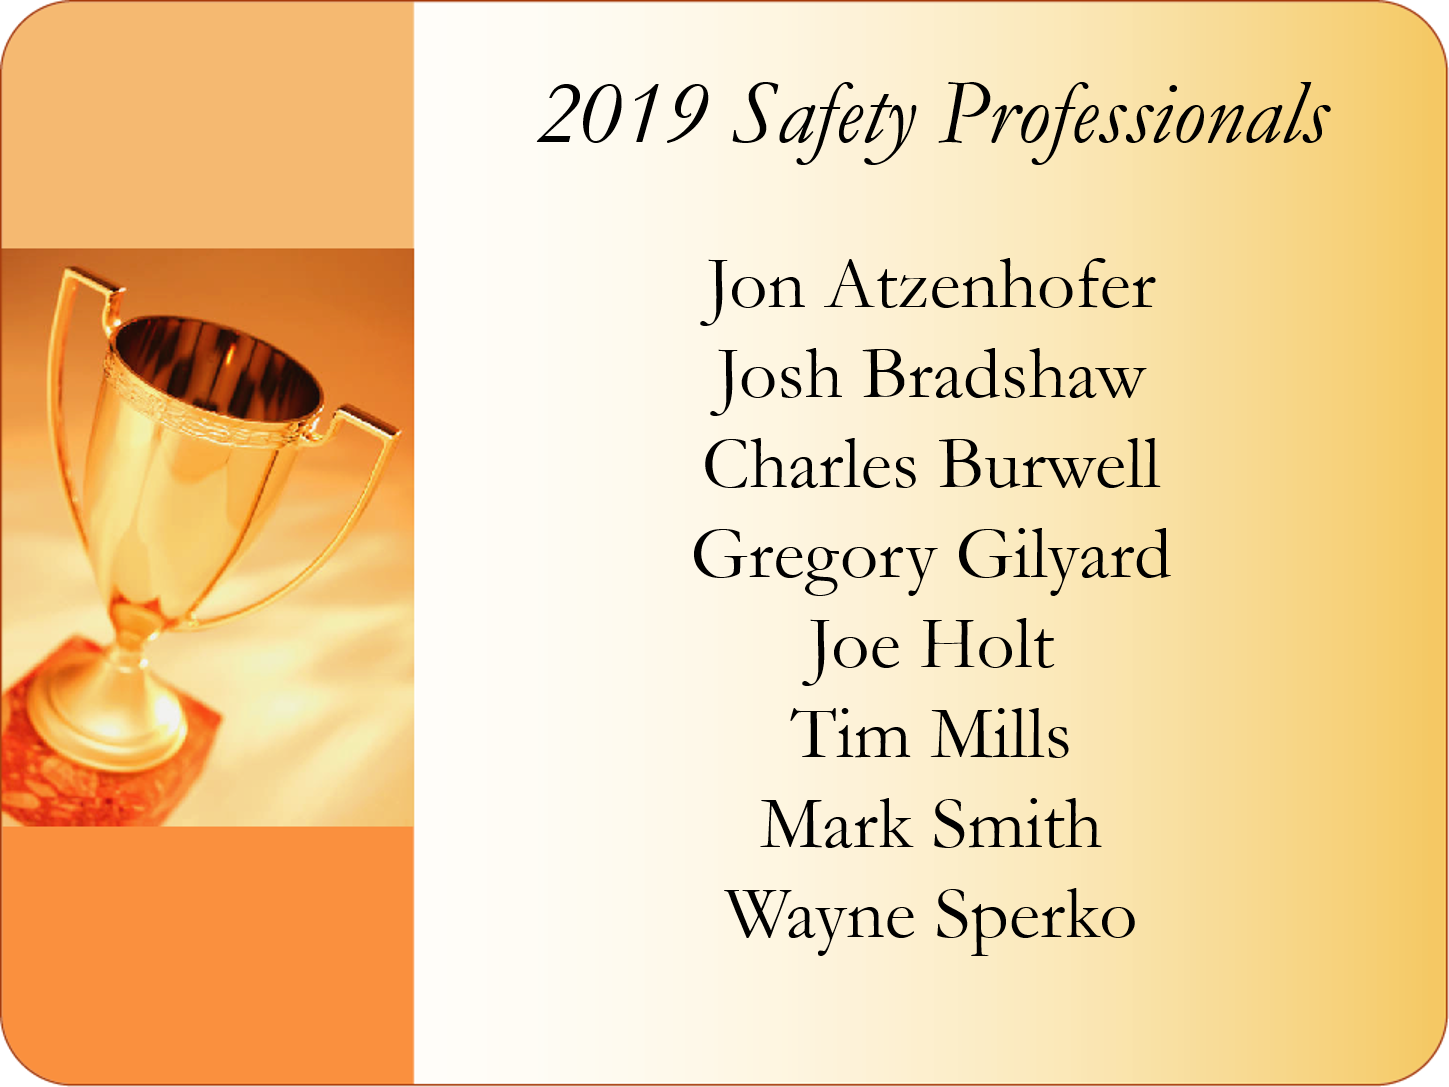 2019 Safety Professional Awards